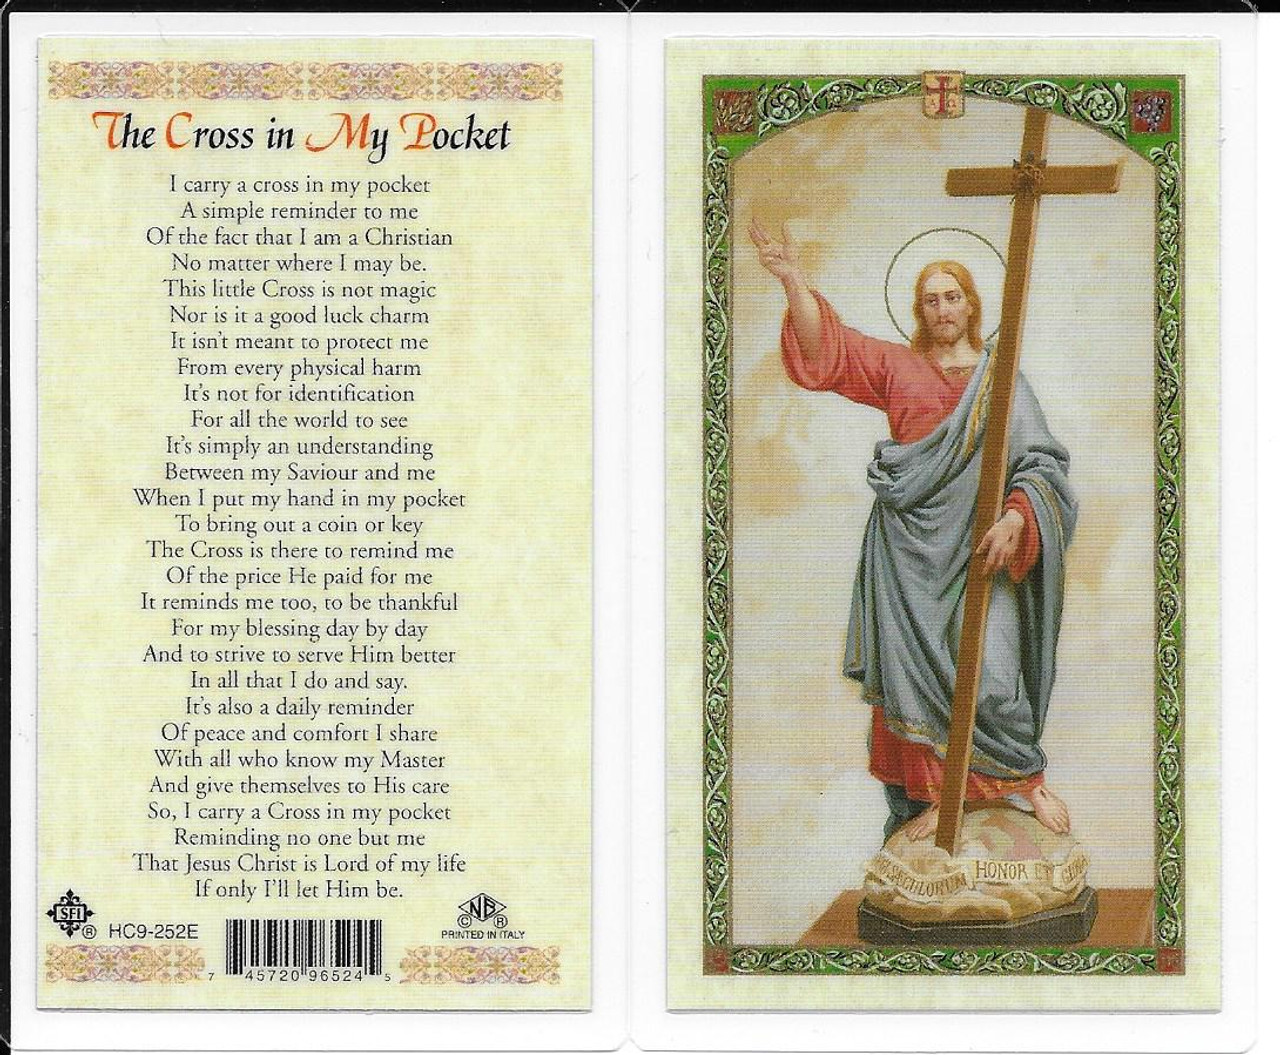 Laminated Prayer Card to The Cross in My Pocket